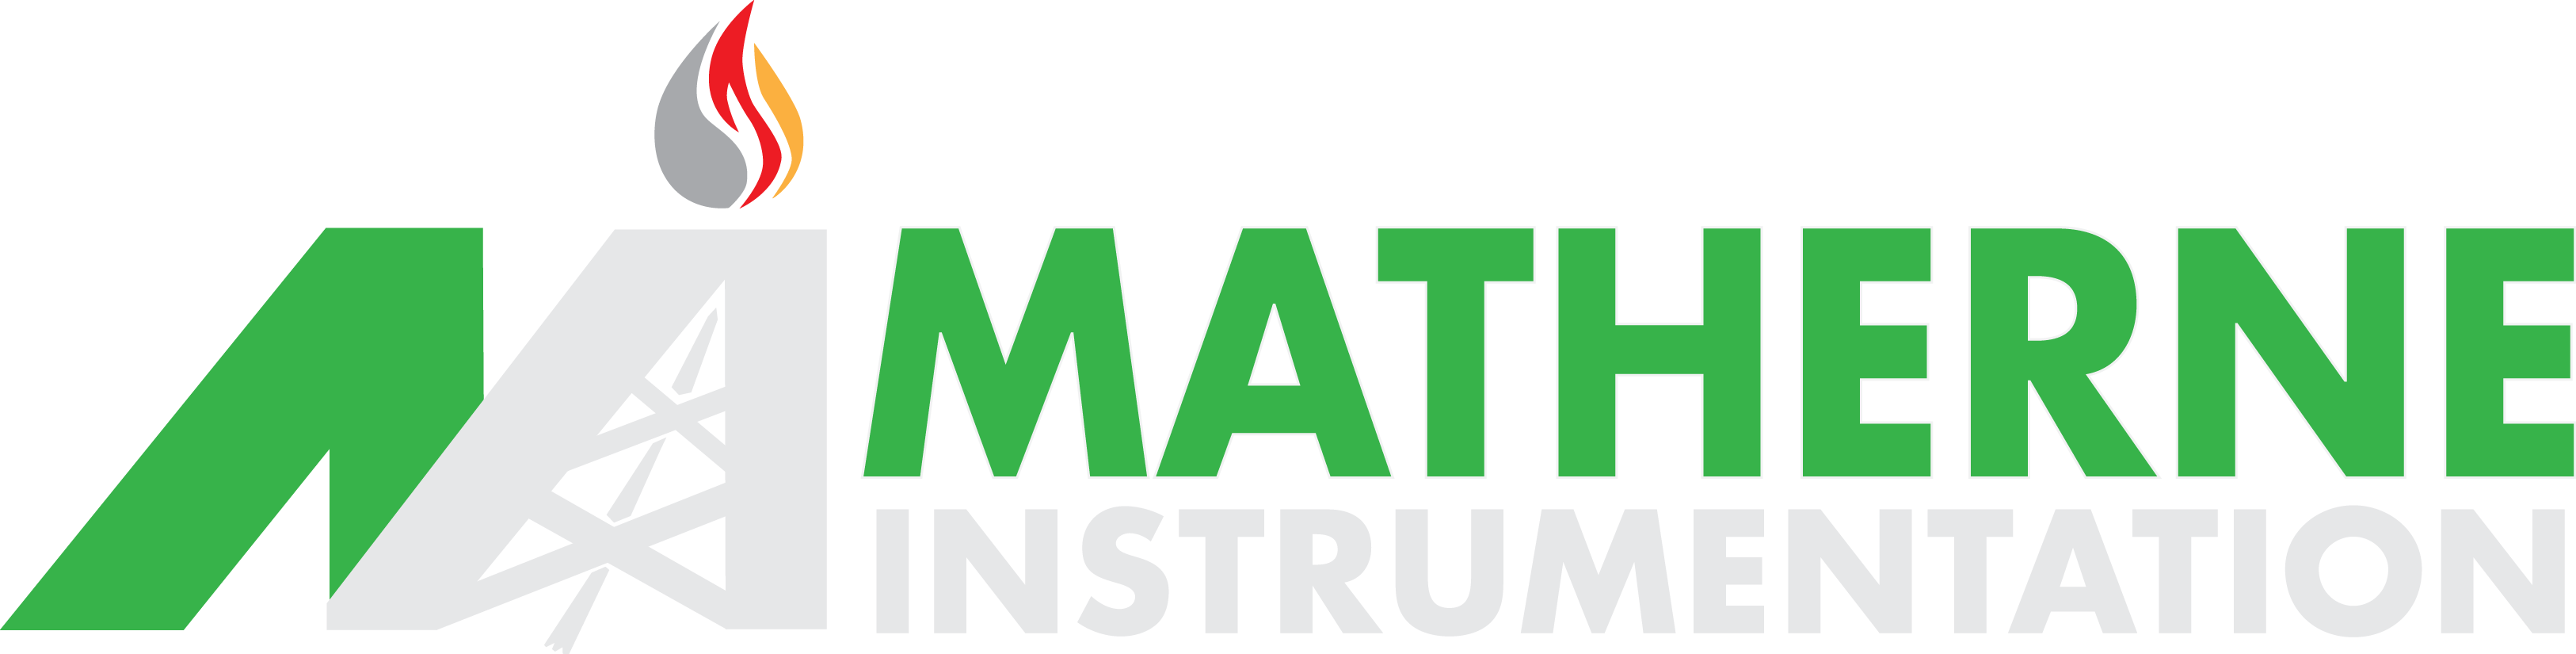 Matherne_LOGO_Light_Green_Gray_2020